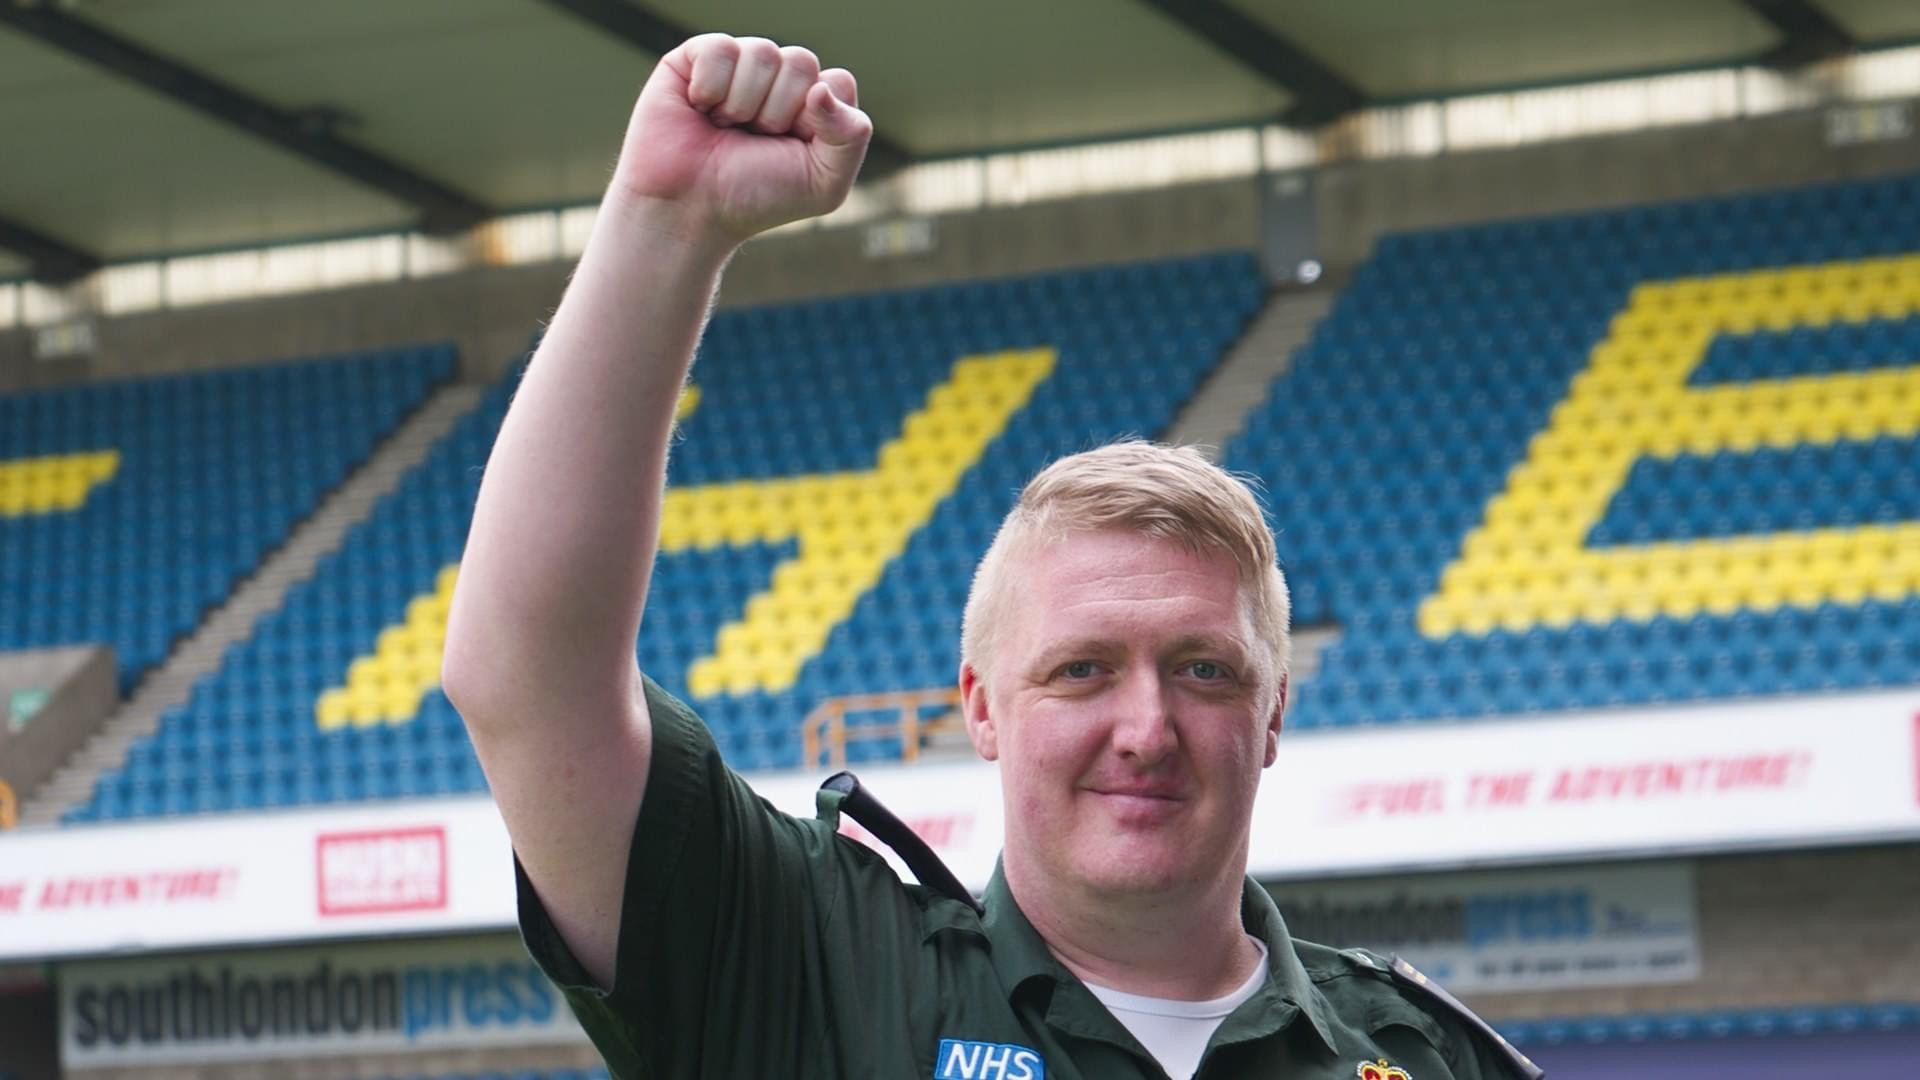 Photo of Sean smiling at the camera, whilst pumping his fist in the air, in front of 'The Den' stands at Millwall Football Club.